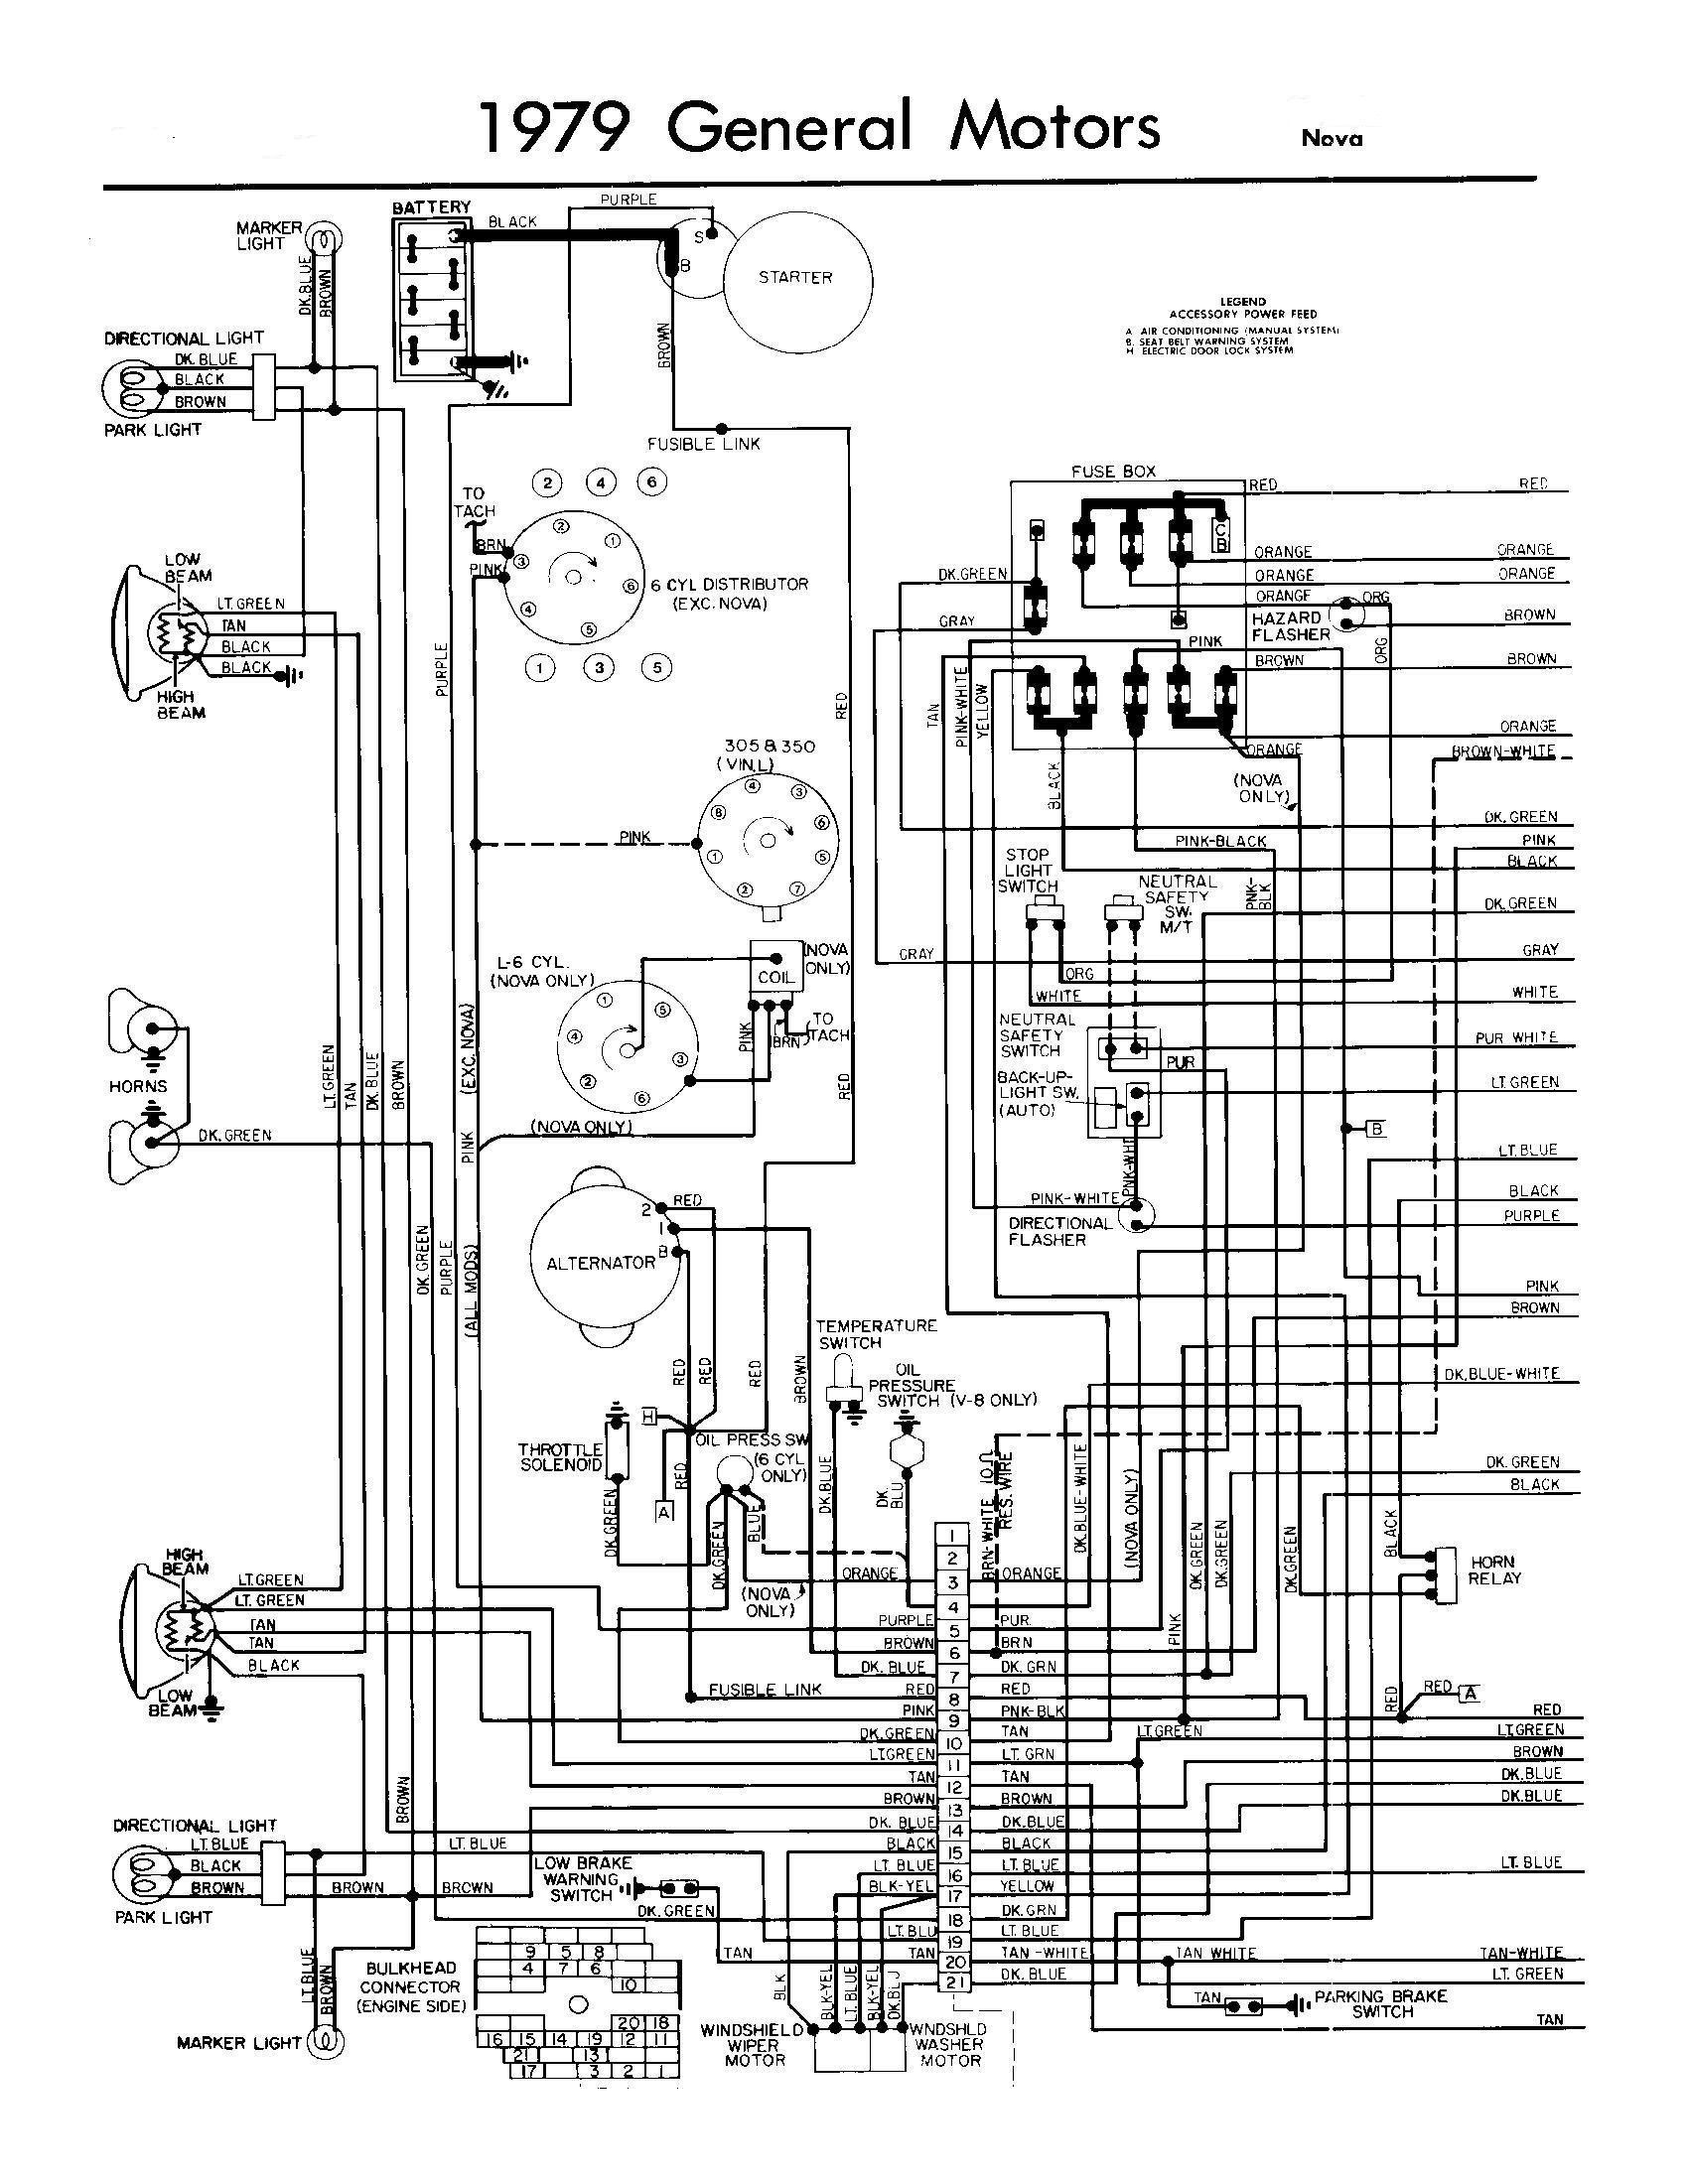 1989 gm wiring harness schematic trusted wiring diagrams u2022 rh reeve carney com 86 chevy truck radio wiring diagram 1986 chevy truck starter wiring diagram